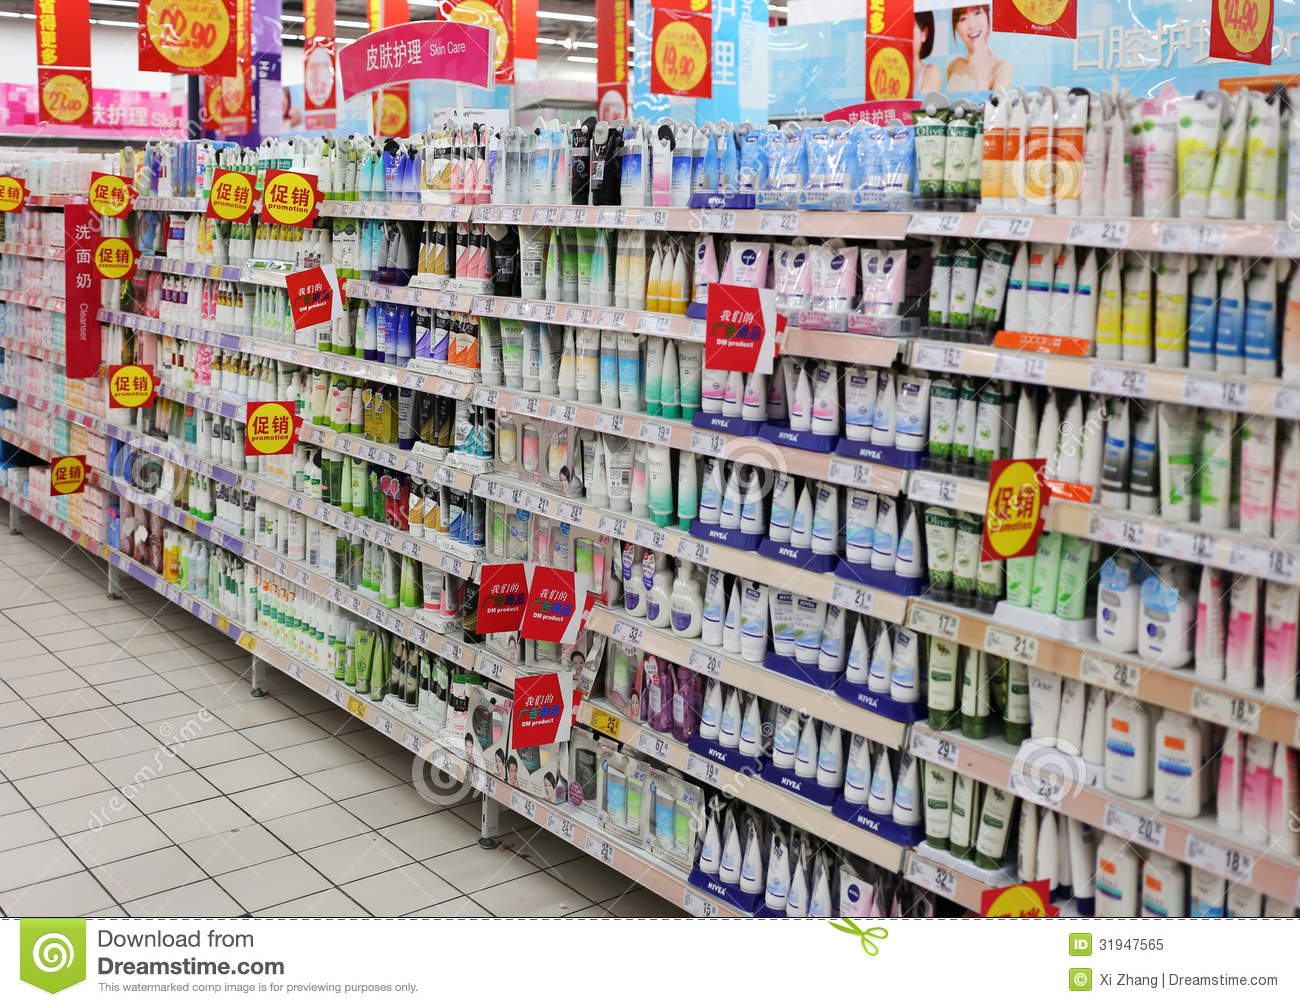 Dbackstp together with Royalty Free Stock Photo Watsons Pharmacy Shop Cosmetic View People Image31947565 additionally Glovers Pitching Hitting Scouting Charts furthermore Post Office also Stock Photo The Dragon Stairway Park Guell By Antoni Gaudi Architect Barcelona 78427769. on fence shopping